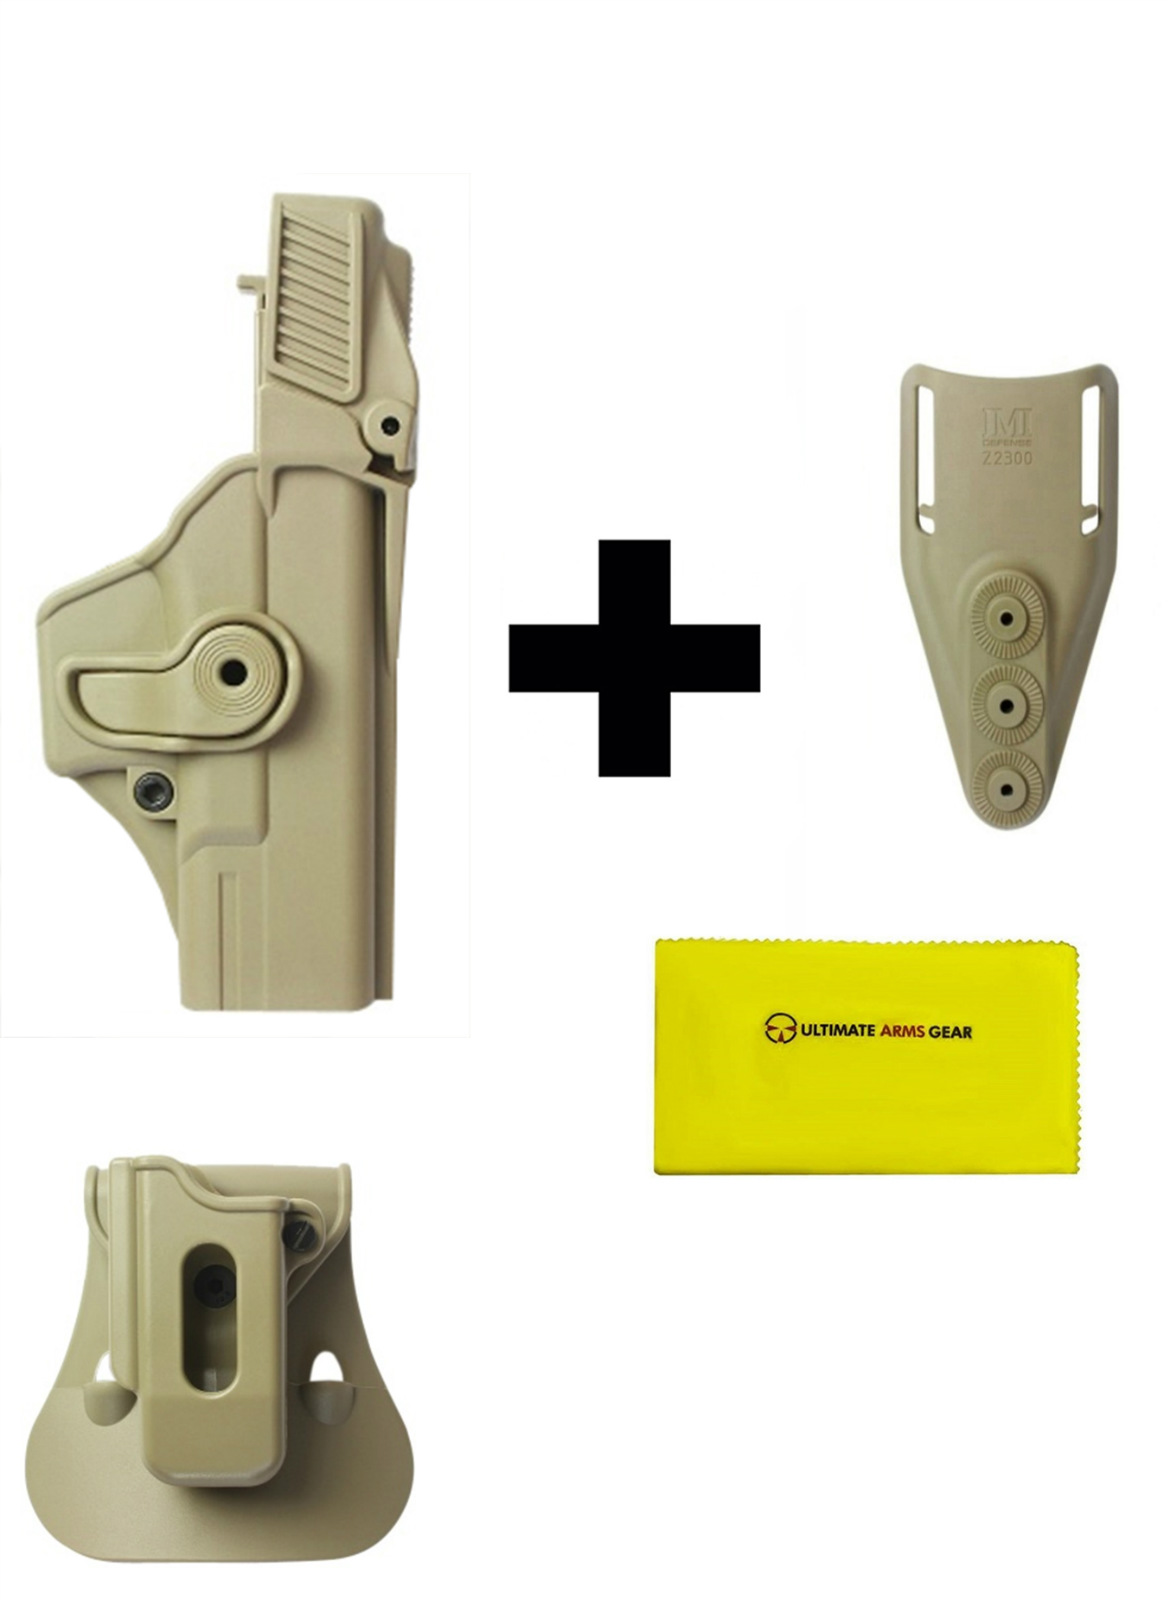 IMI Defense ZSP08 Single Mag Pouch & Paddle + Z1400 Level 3 360� Rotate Holster Glock 19 23 25 32 Gen 4, Tan + Z2300 Low... by